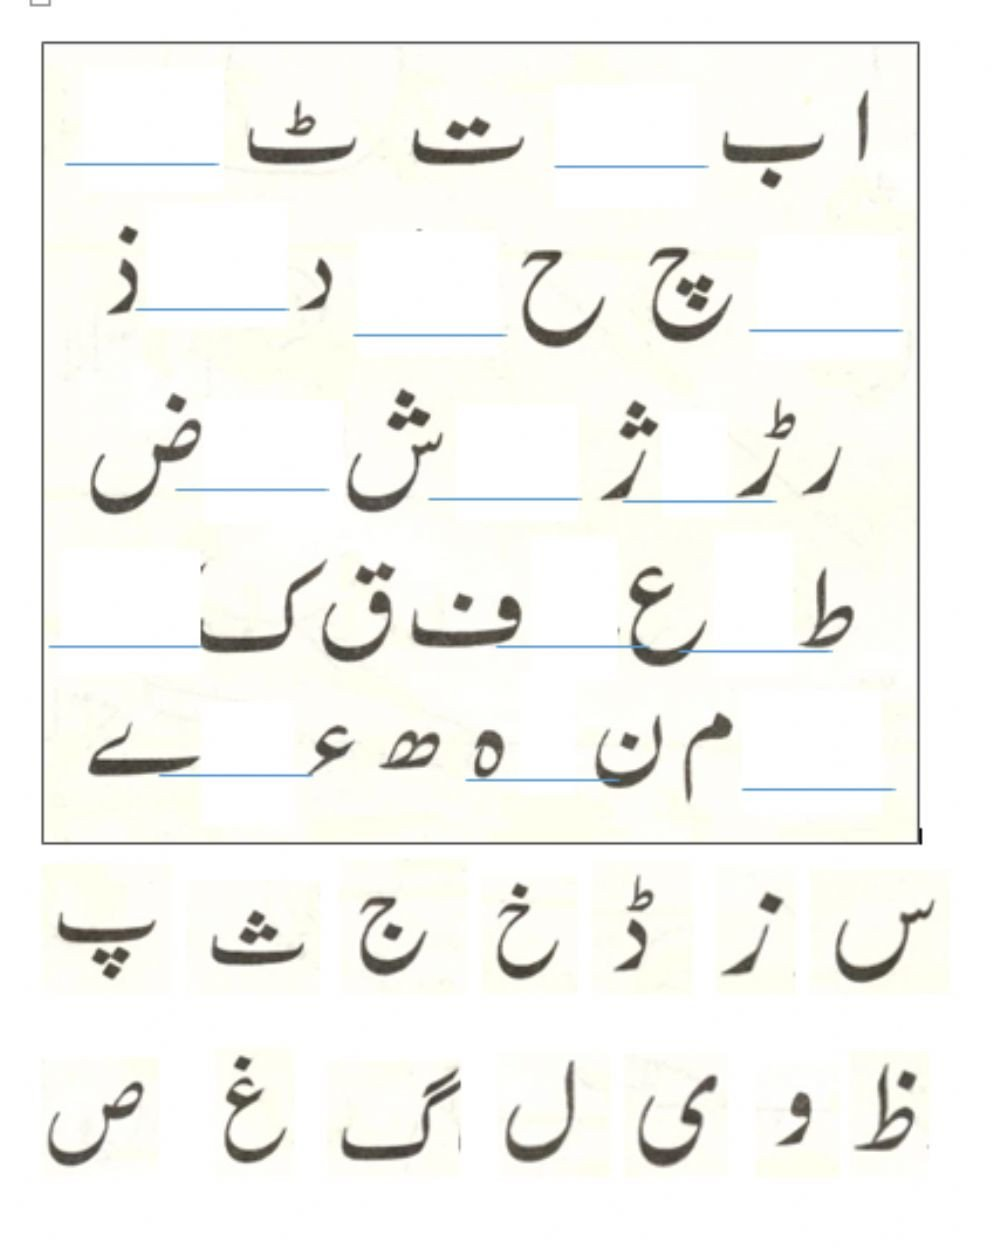 Urdu Alphabet Worksheet Missing Haroof E Tahaji Interactive Worksheet